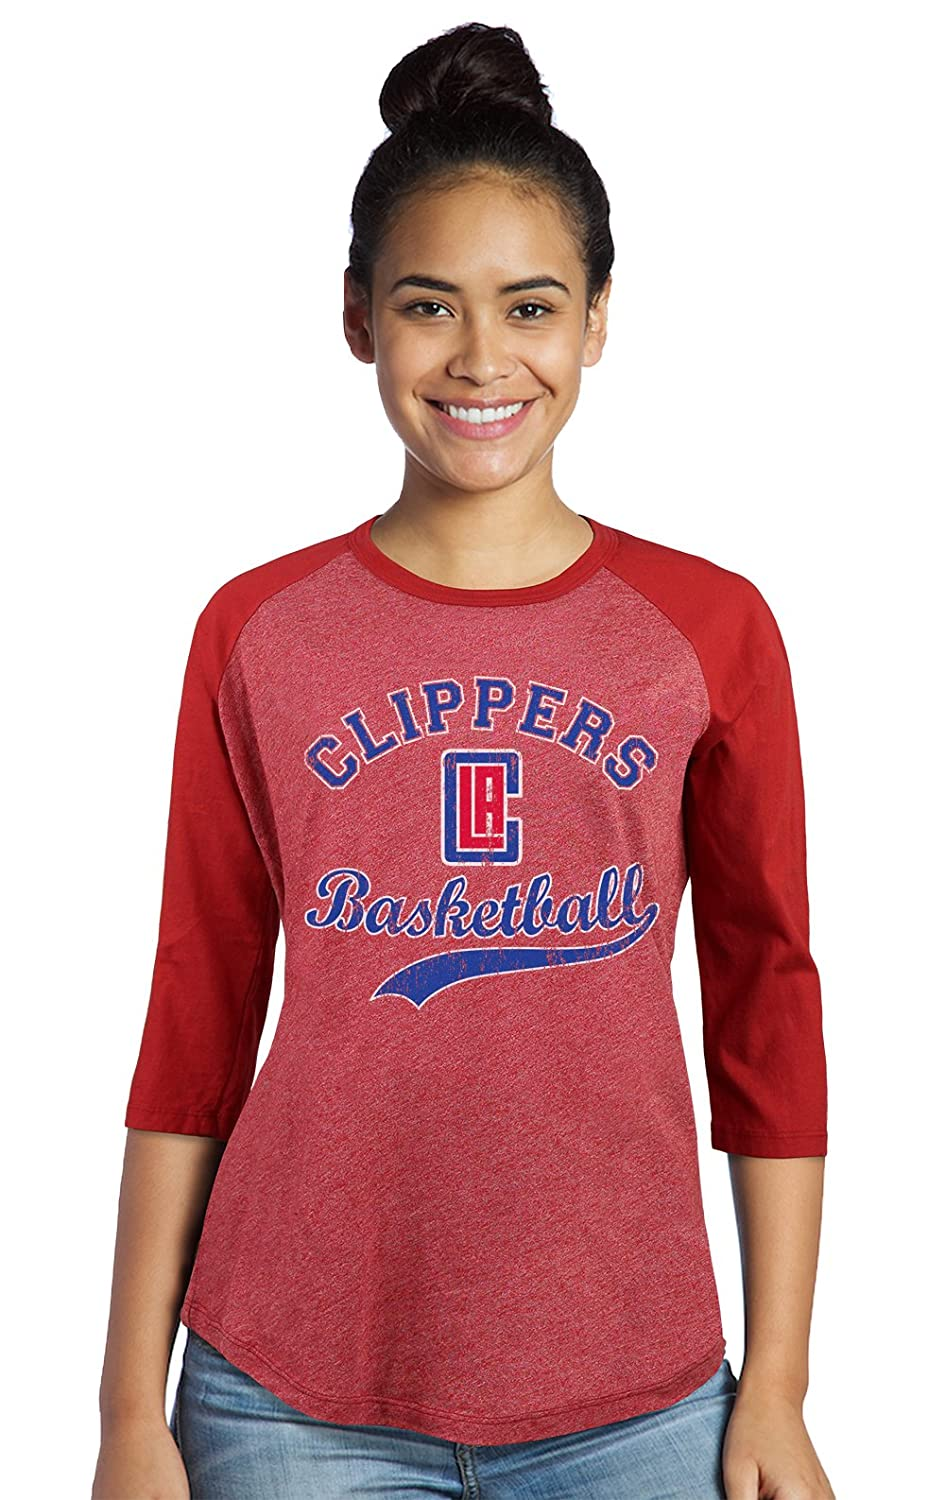 ea54960628f Amazon.com   Majestic Athletic NBA Los Angeles Clippers Women s Premium  Triblend 3 4 Sleeve Raglan